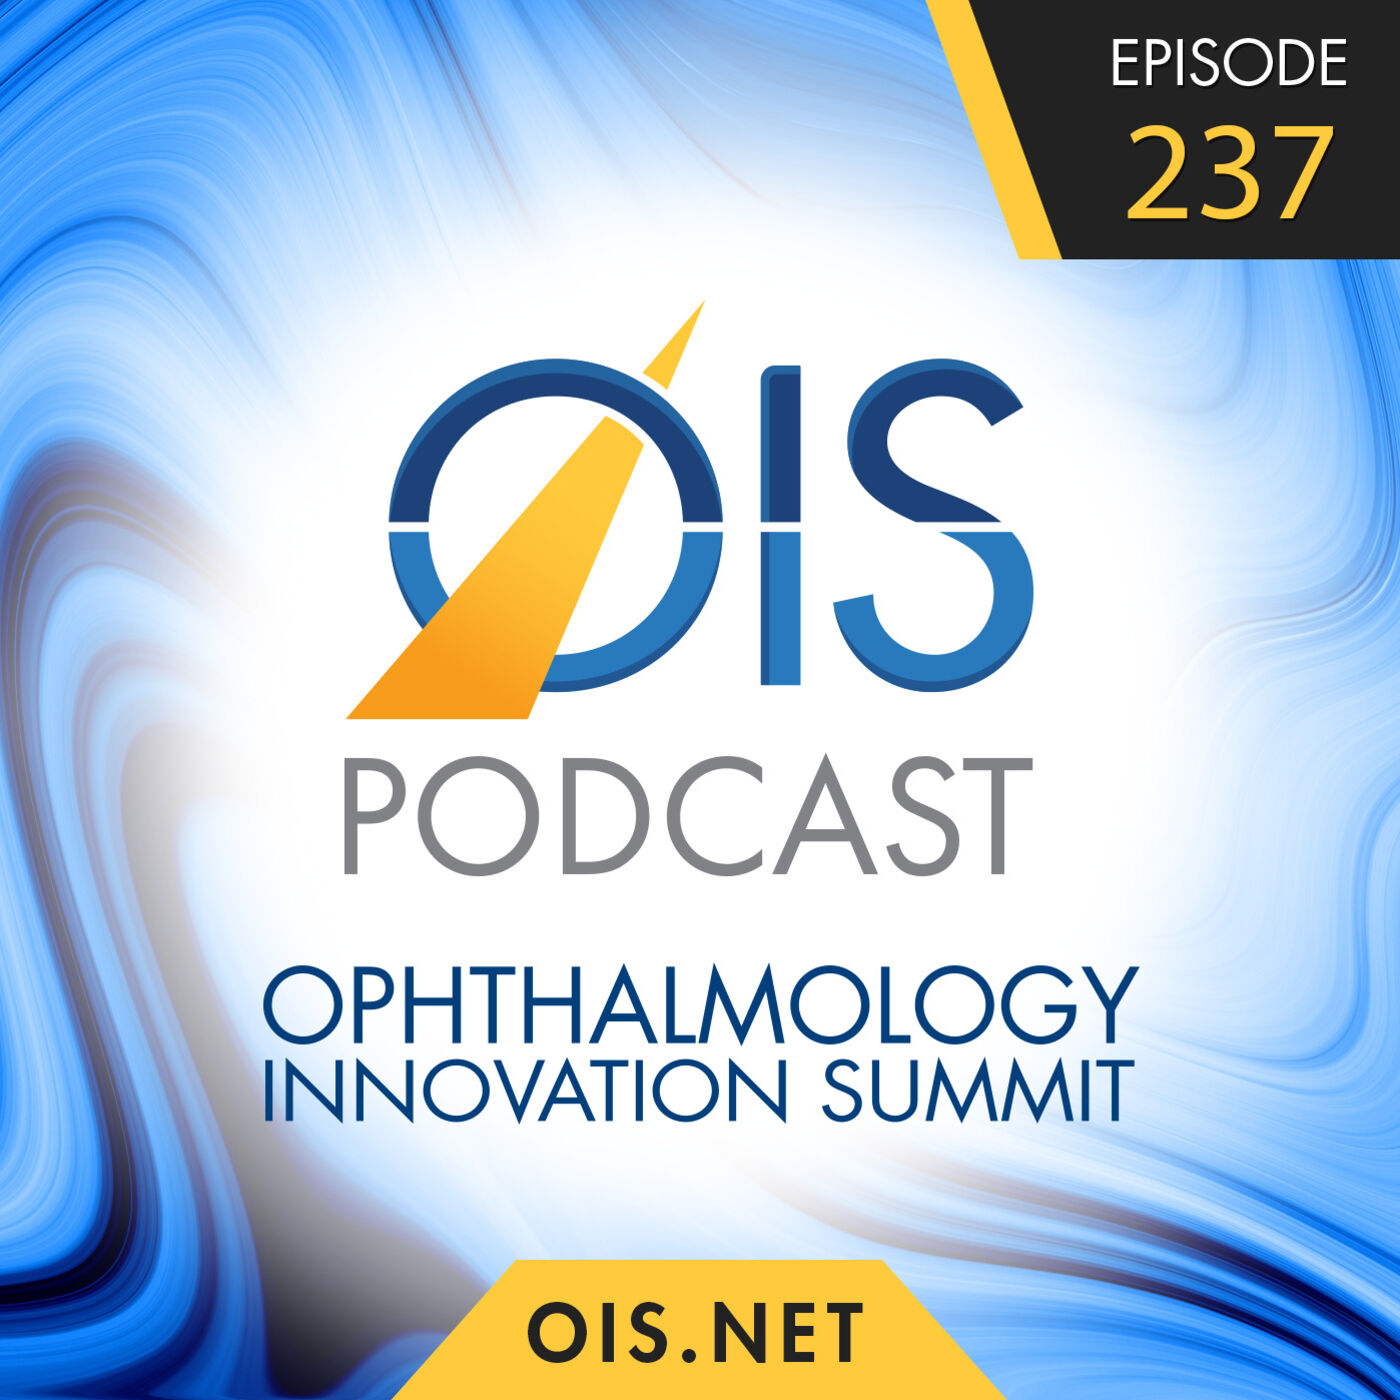 OIS Israel Panel Dives Into Global Industry Insights and Innovation